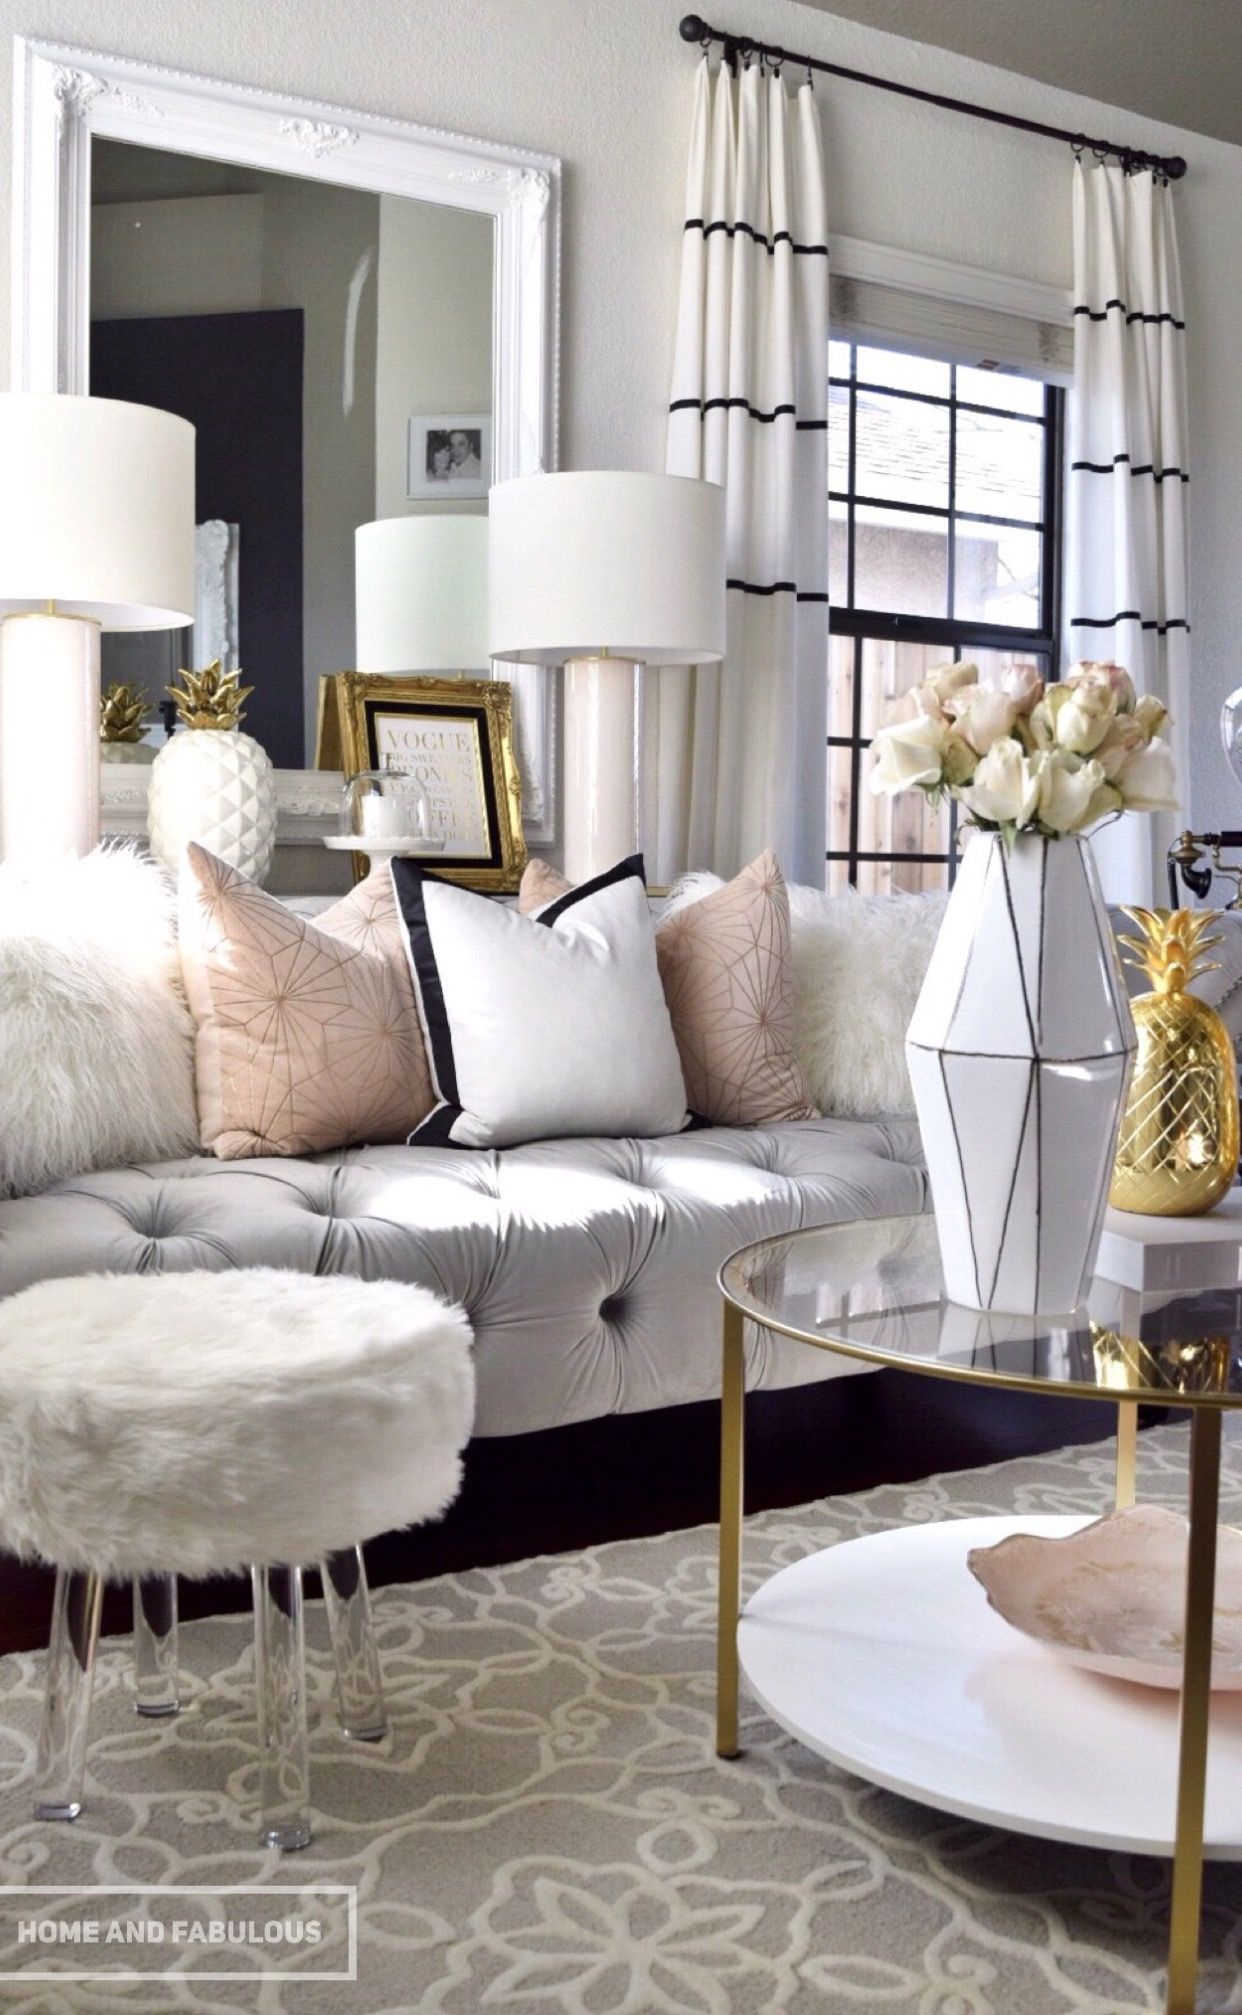 One Sofa Living Room Ideas Rugs For Uk How Couch Inspired A Transformation Homes Black Rod And White Curtains With Narrow Stripes In